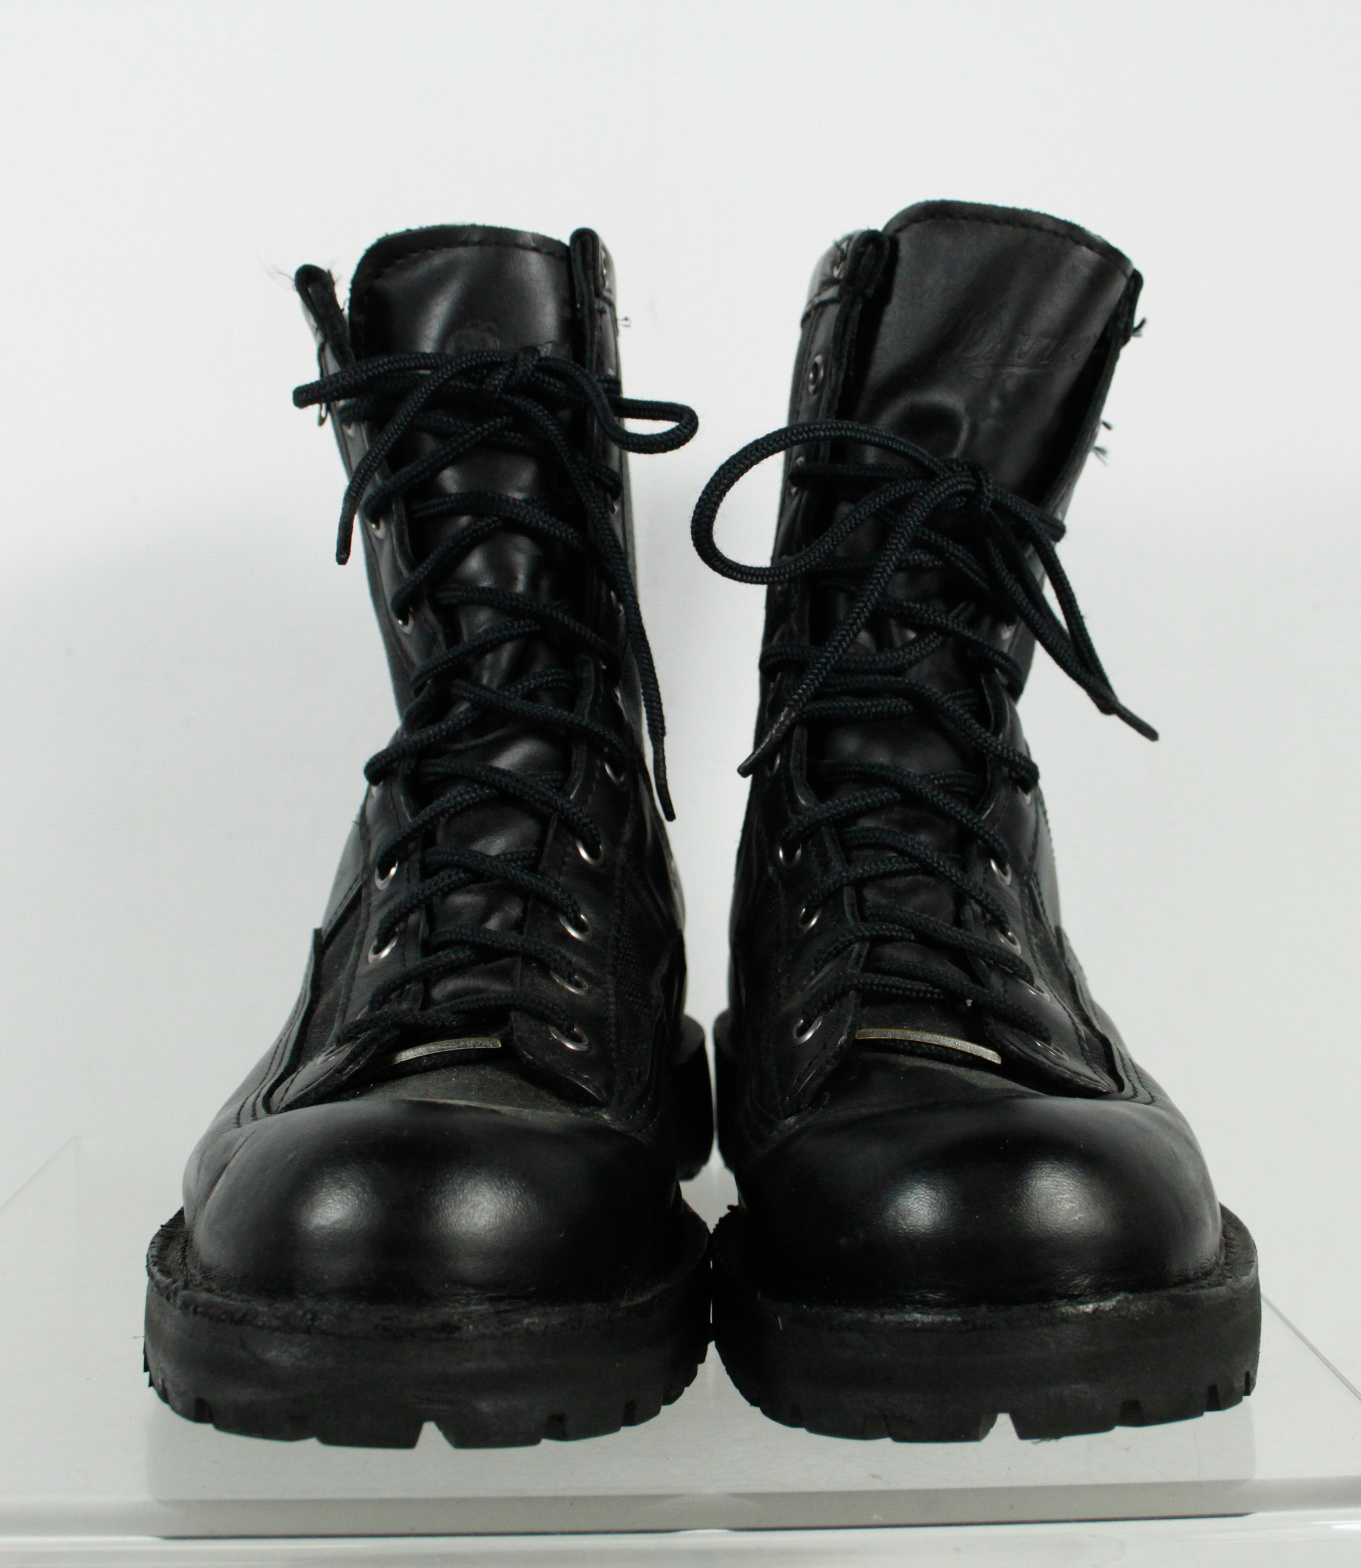 Danner Gore Tex Black Leather Waterproof Lace Up Military